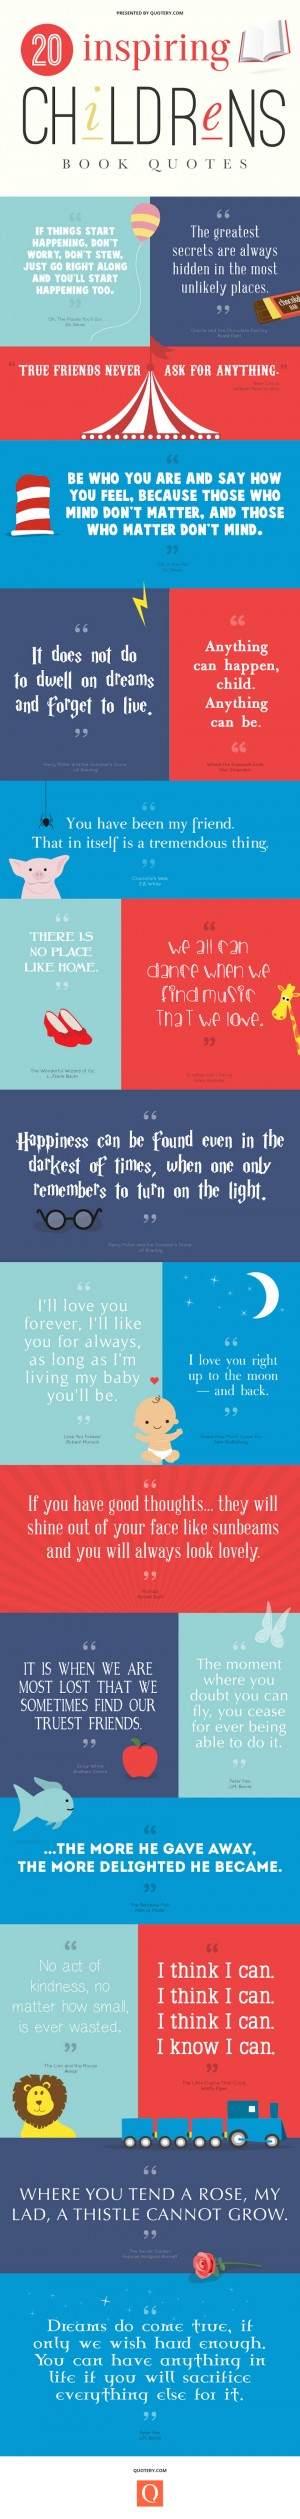 20 most inspiring quotes from children's books (infographic)